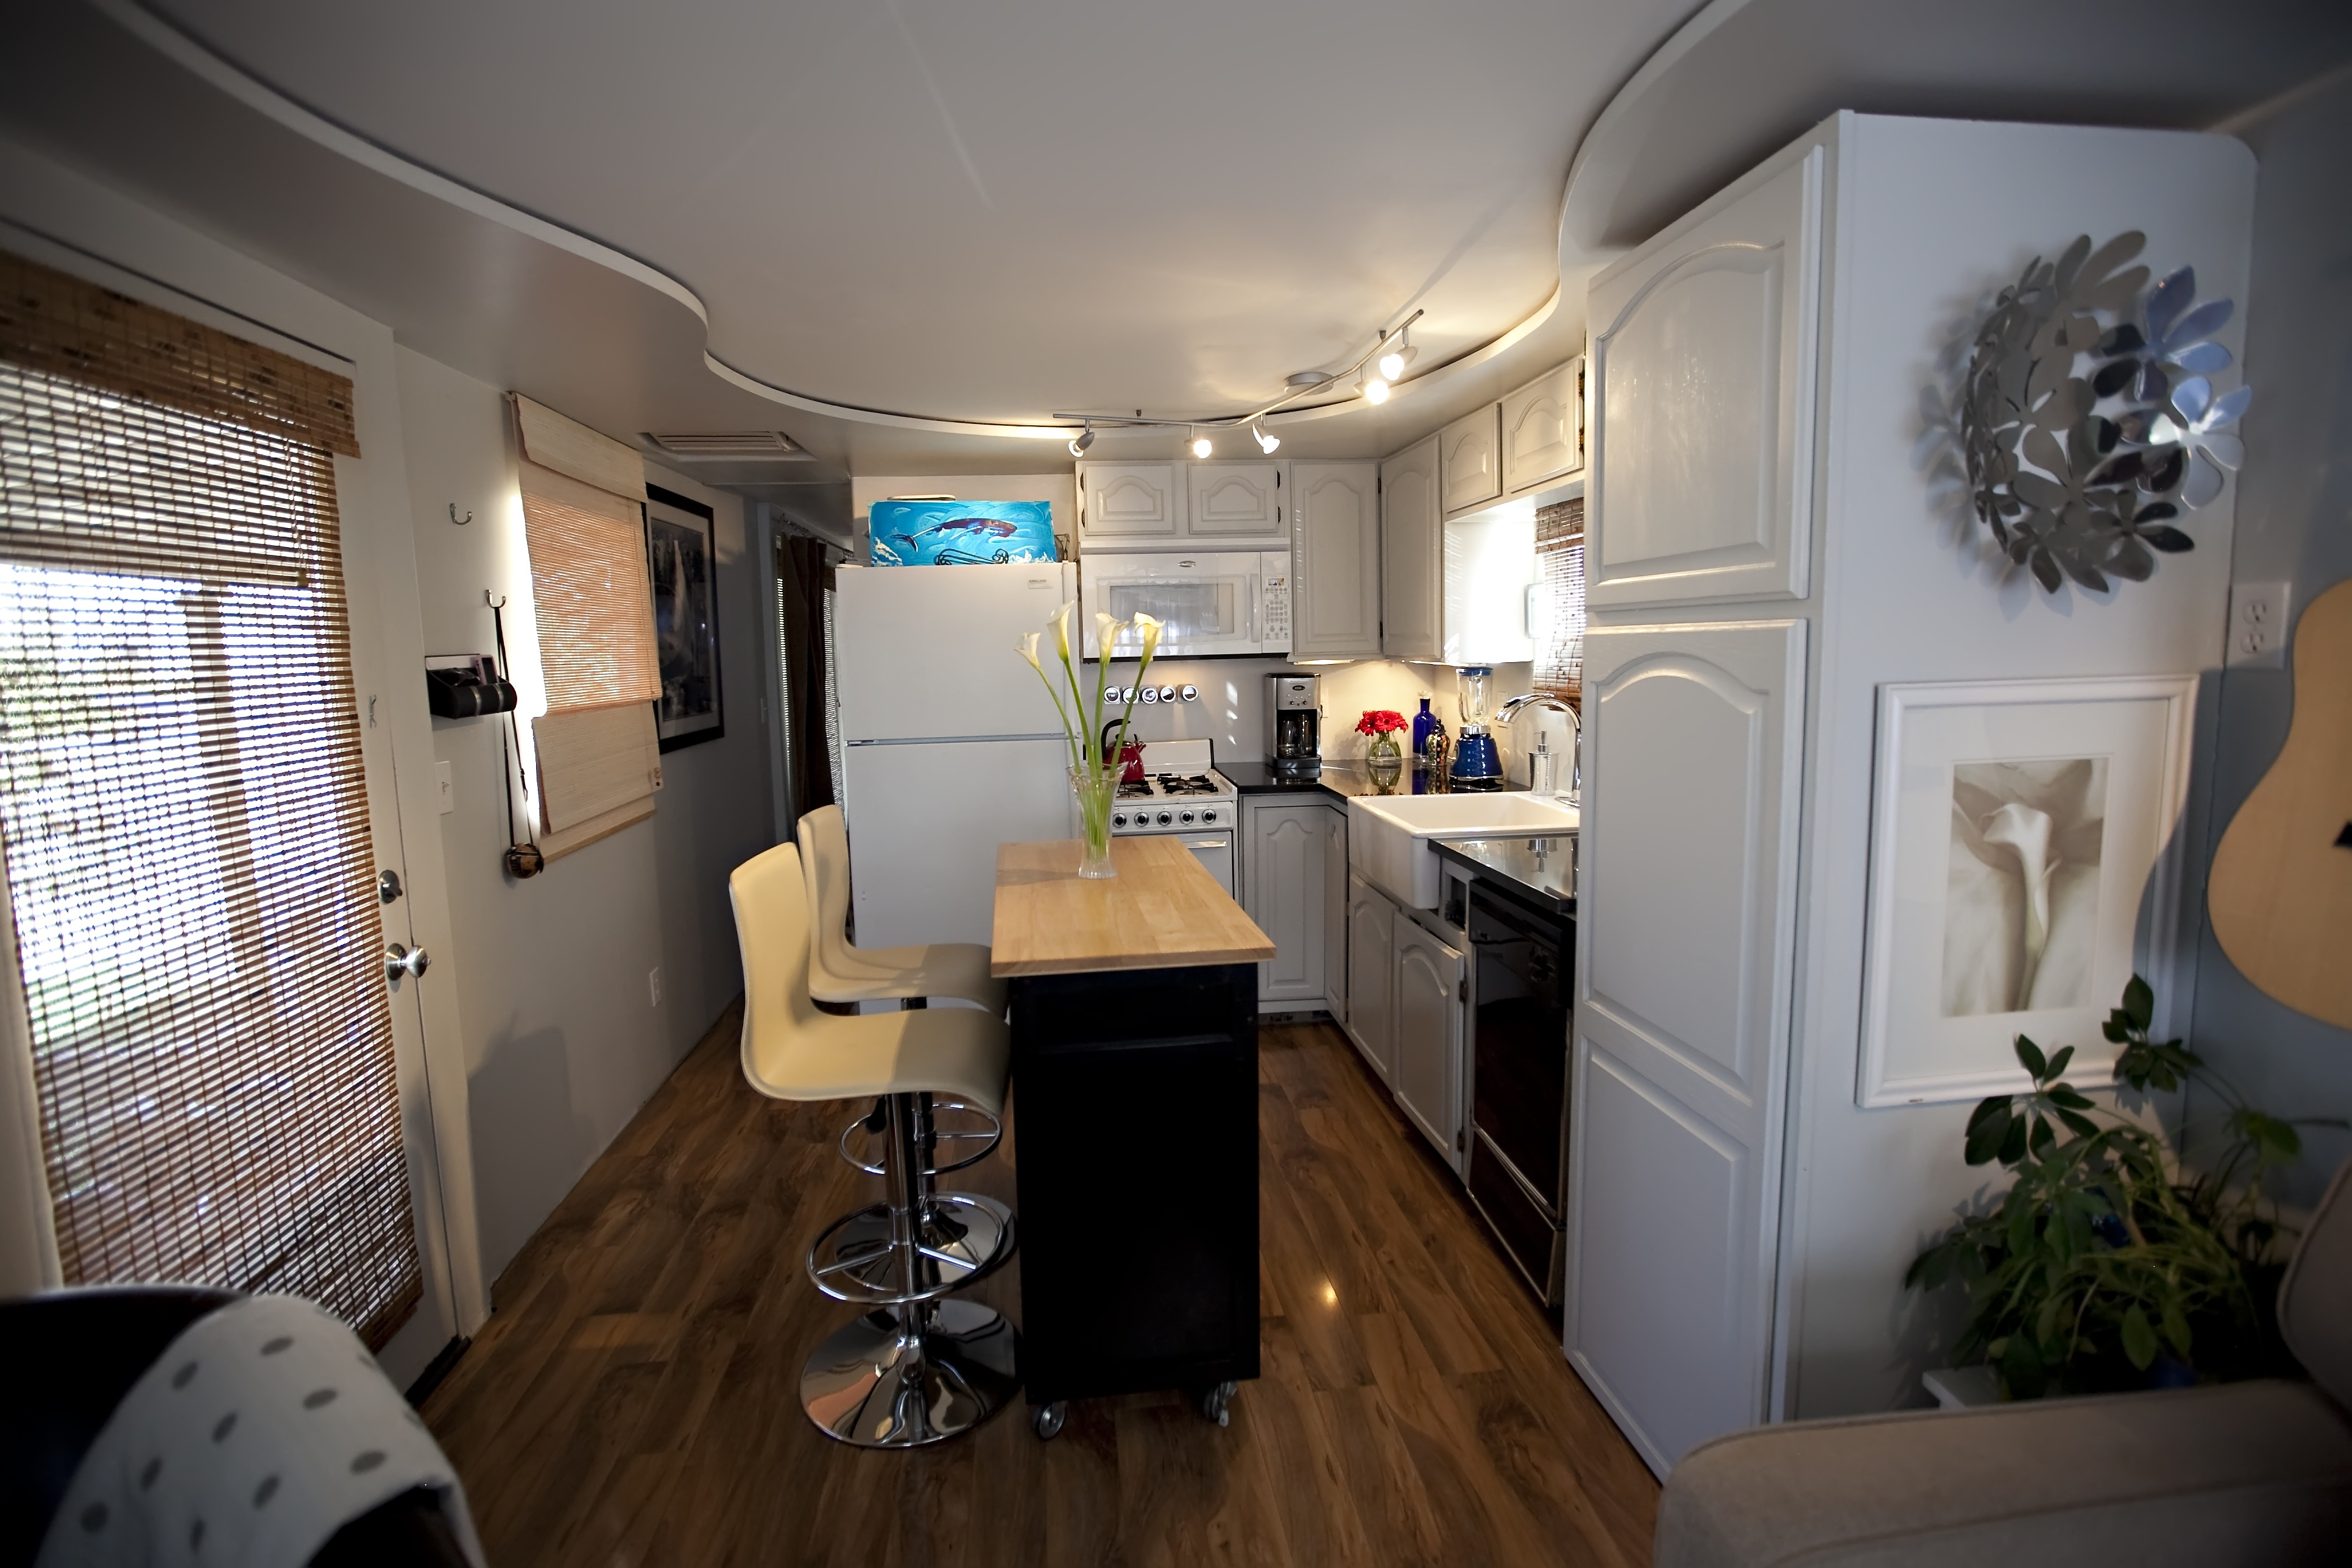 total trailer chic remodel mobile home kitchen remodel Kitchen Demo